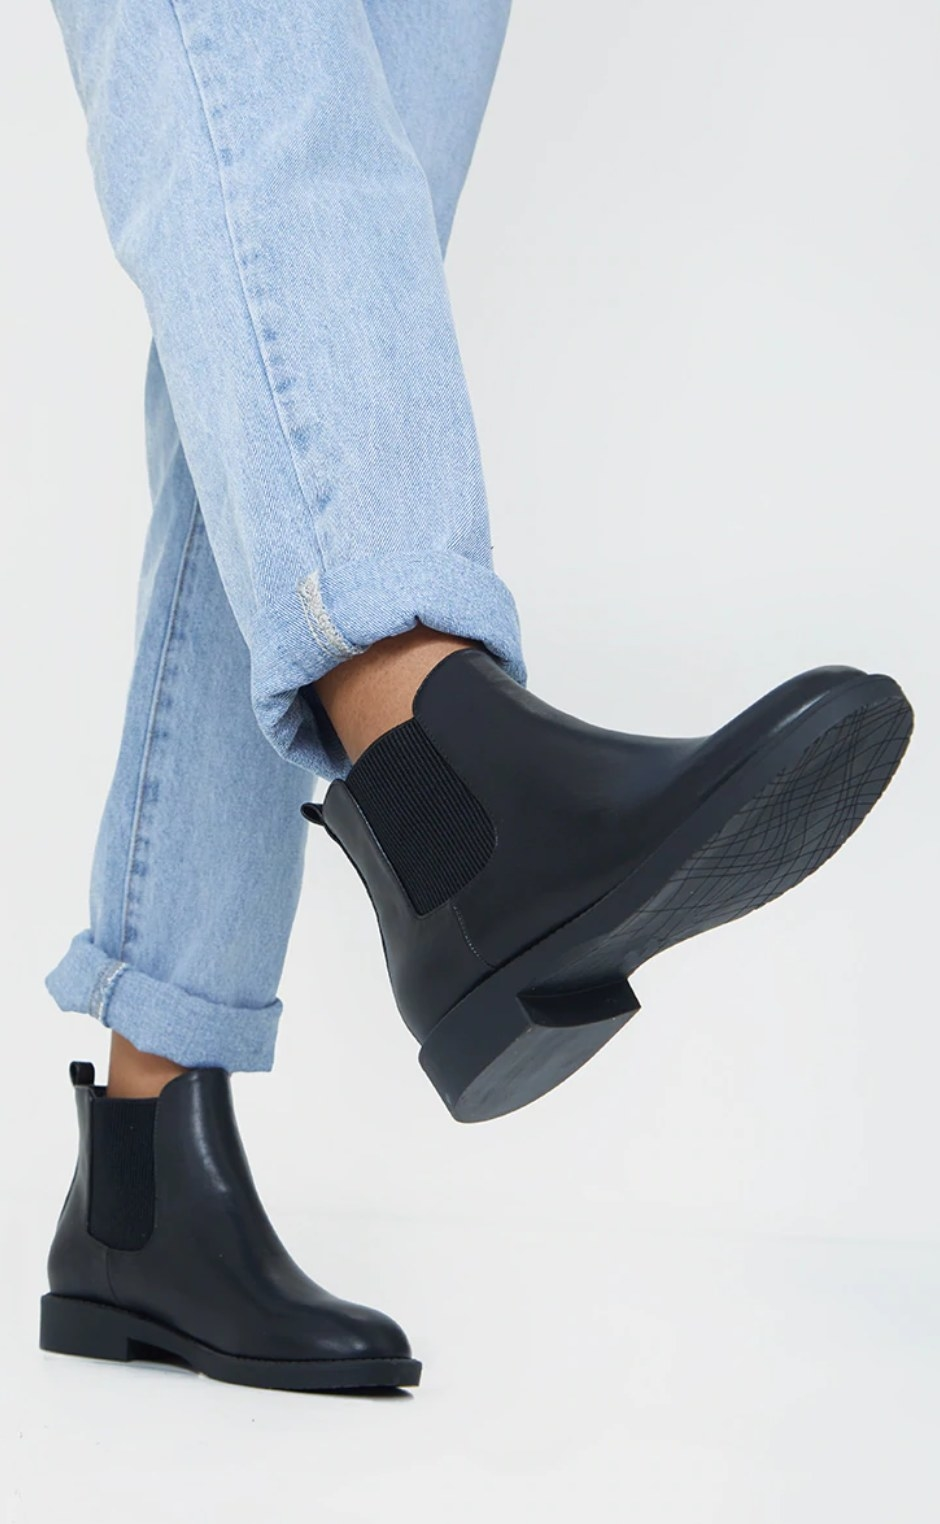 model wearing the black ankle boots with cuffed blue jeans